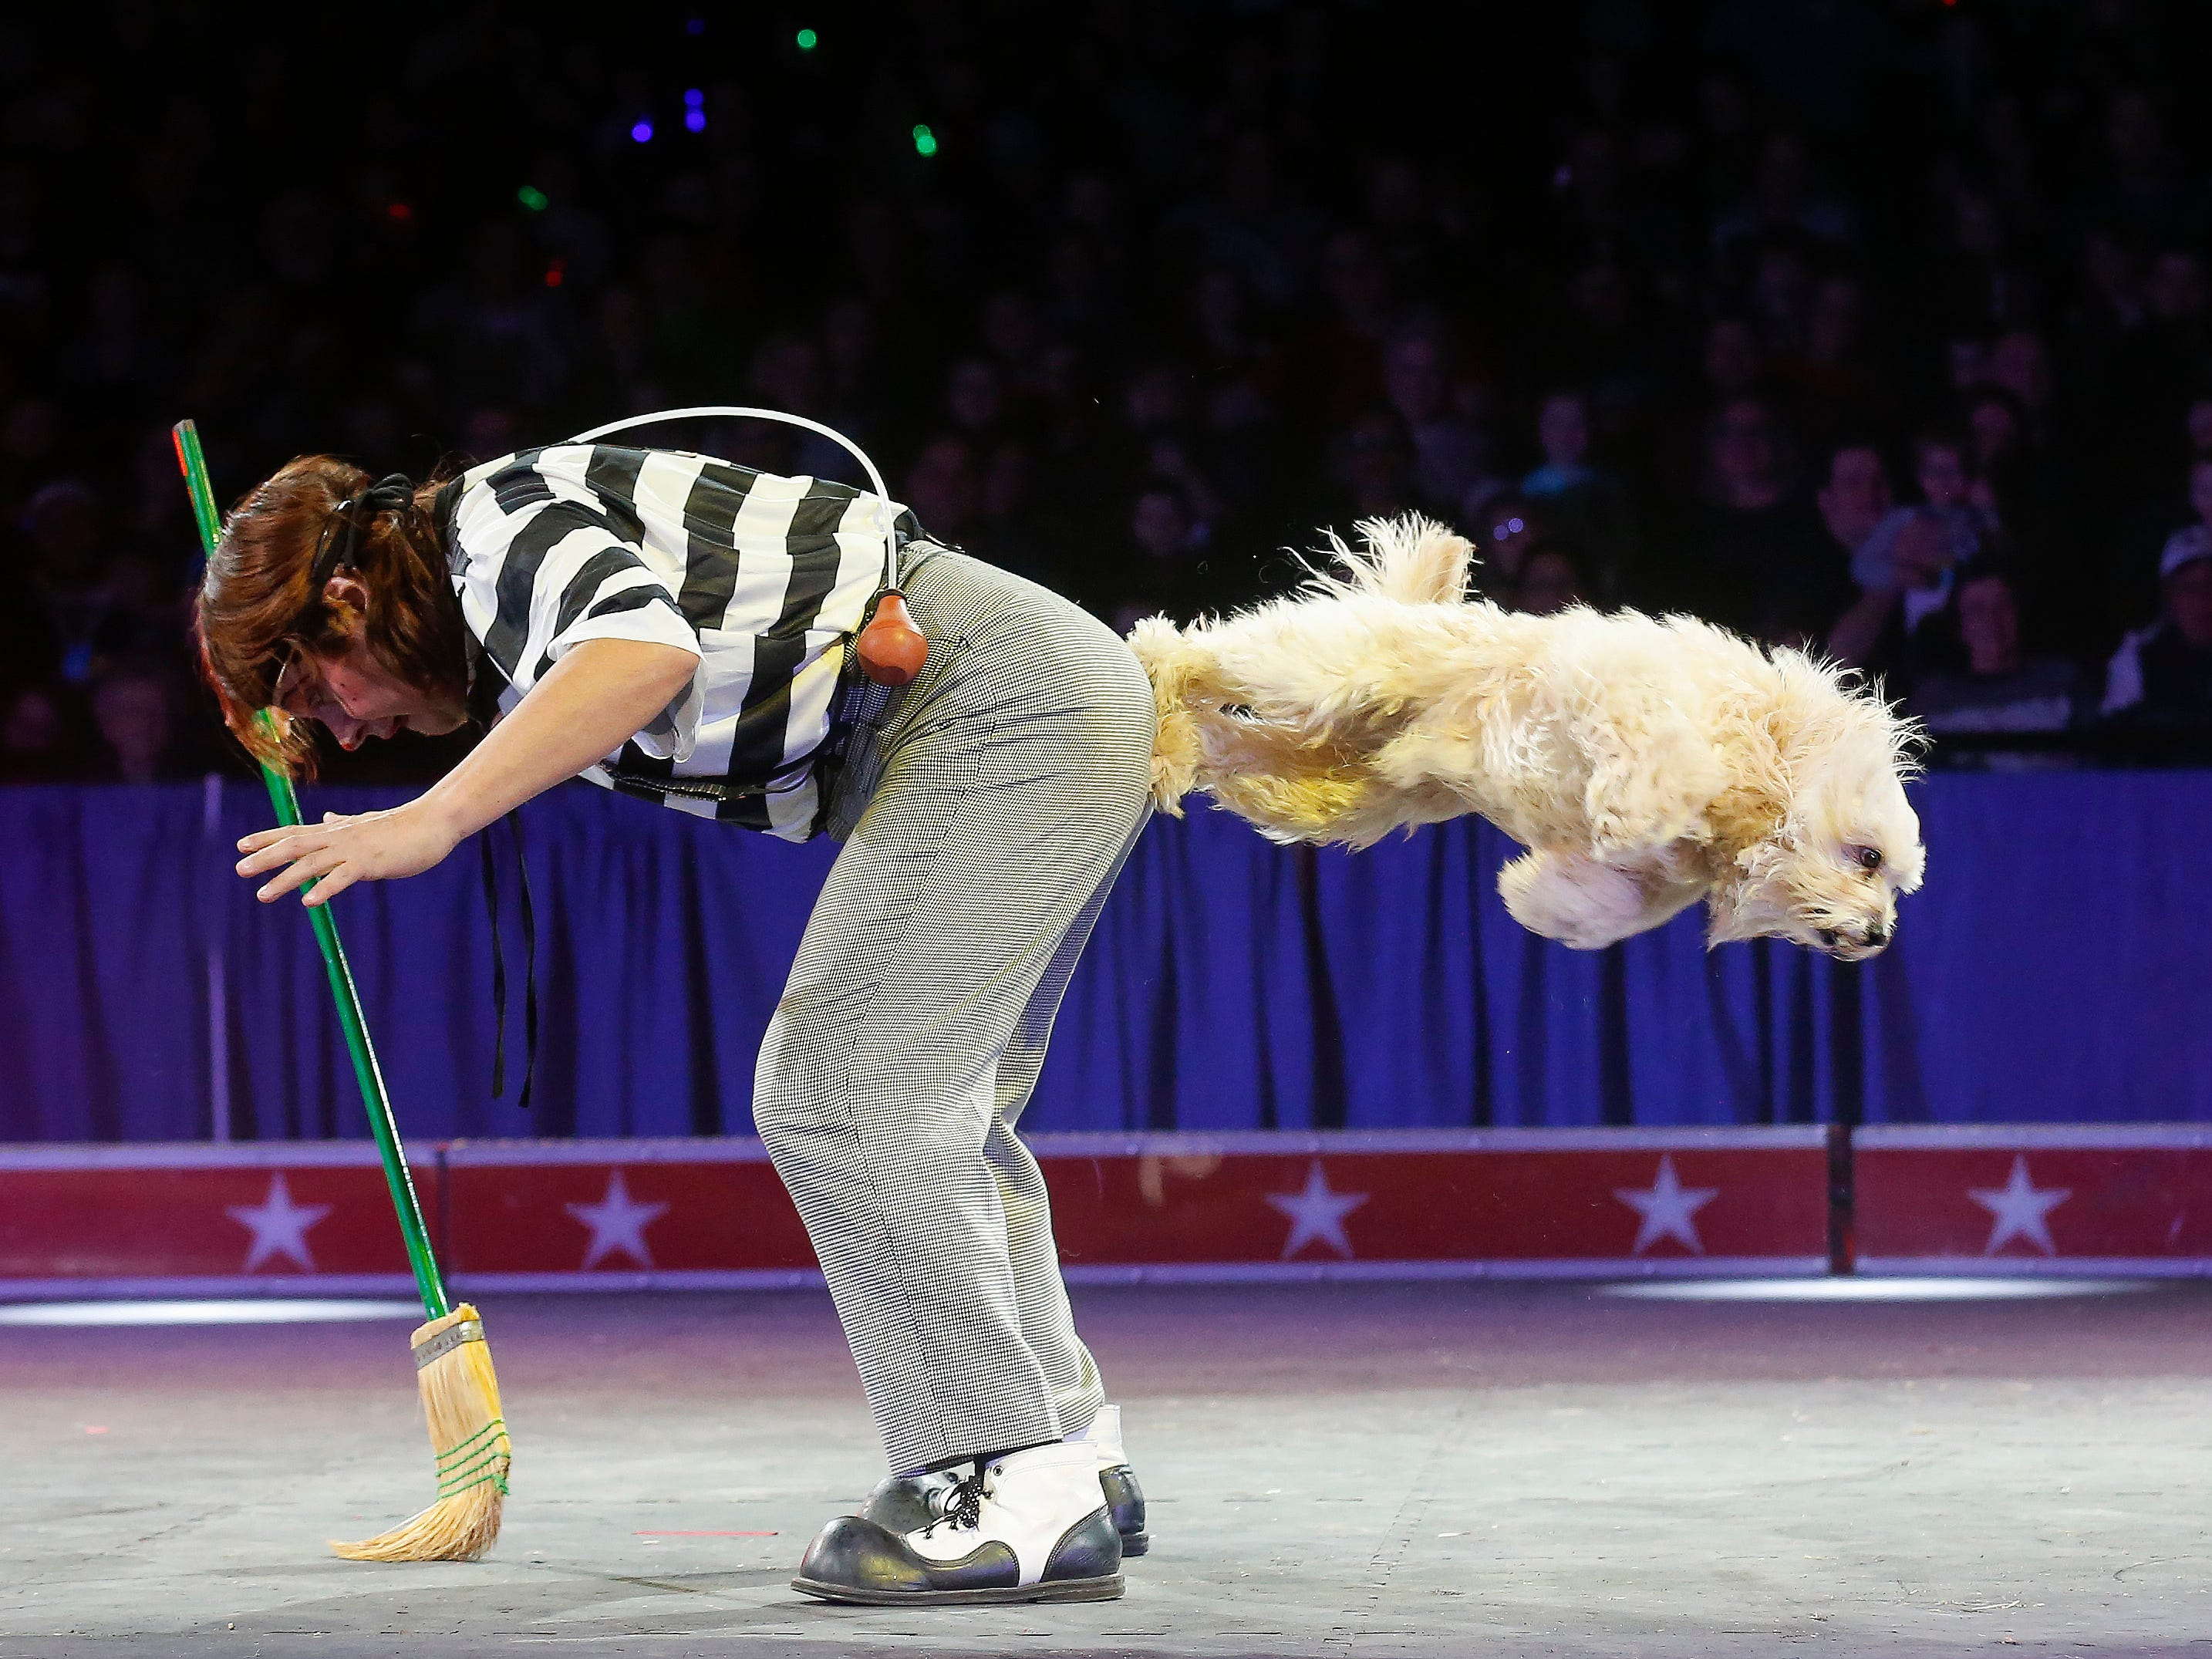 Scenes from opening night of the Carden Circus at JQH Arena on Friday, Feb. 1, 2019.